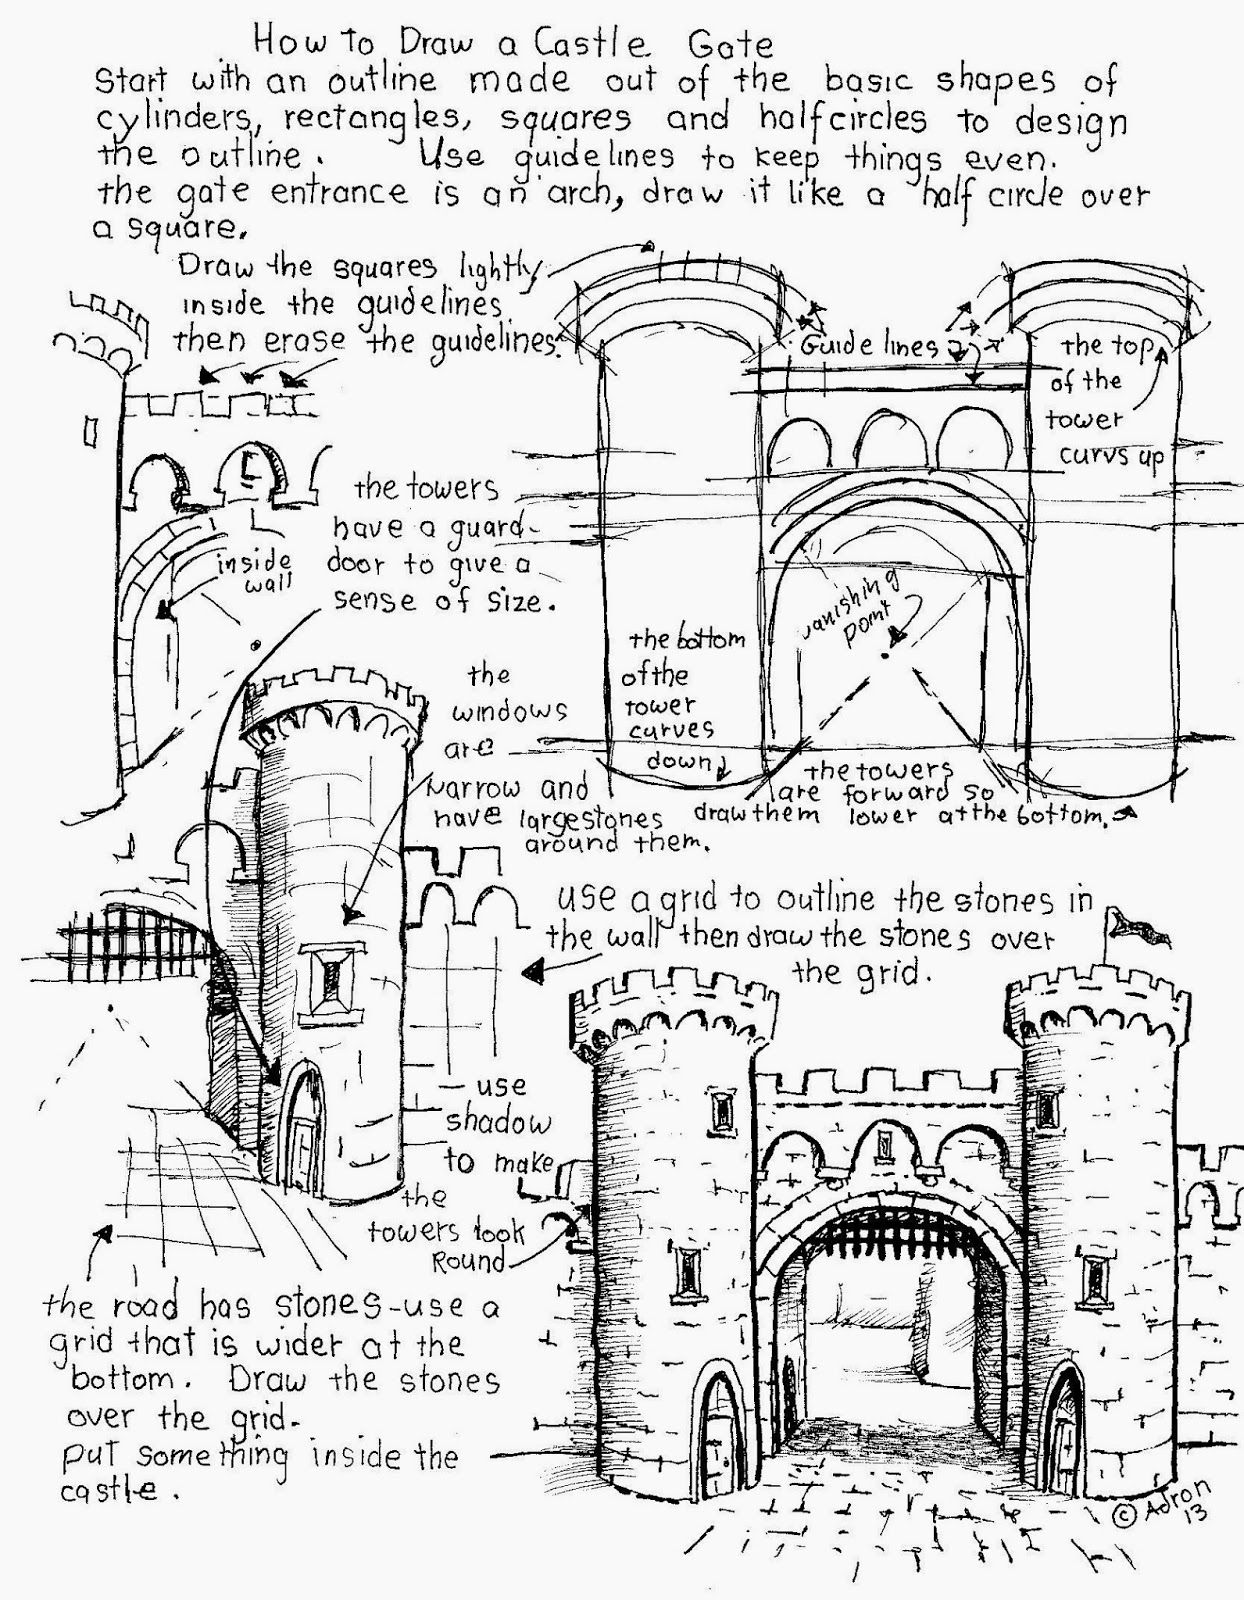 How To Draw A Castle Gate Worksheet